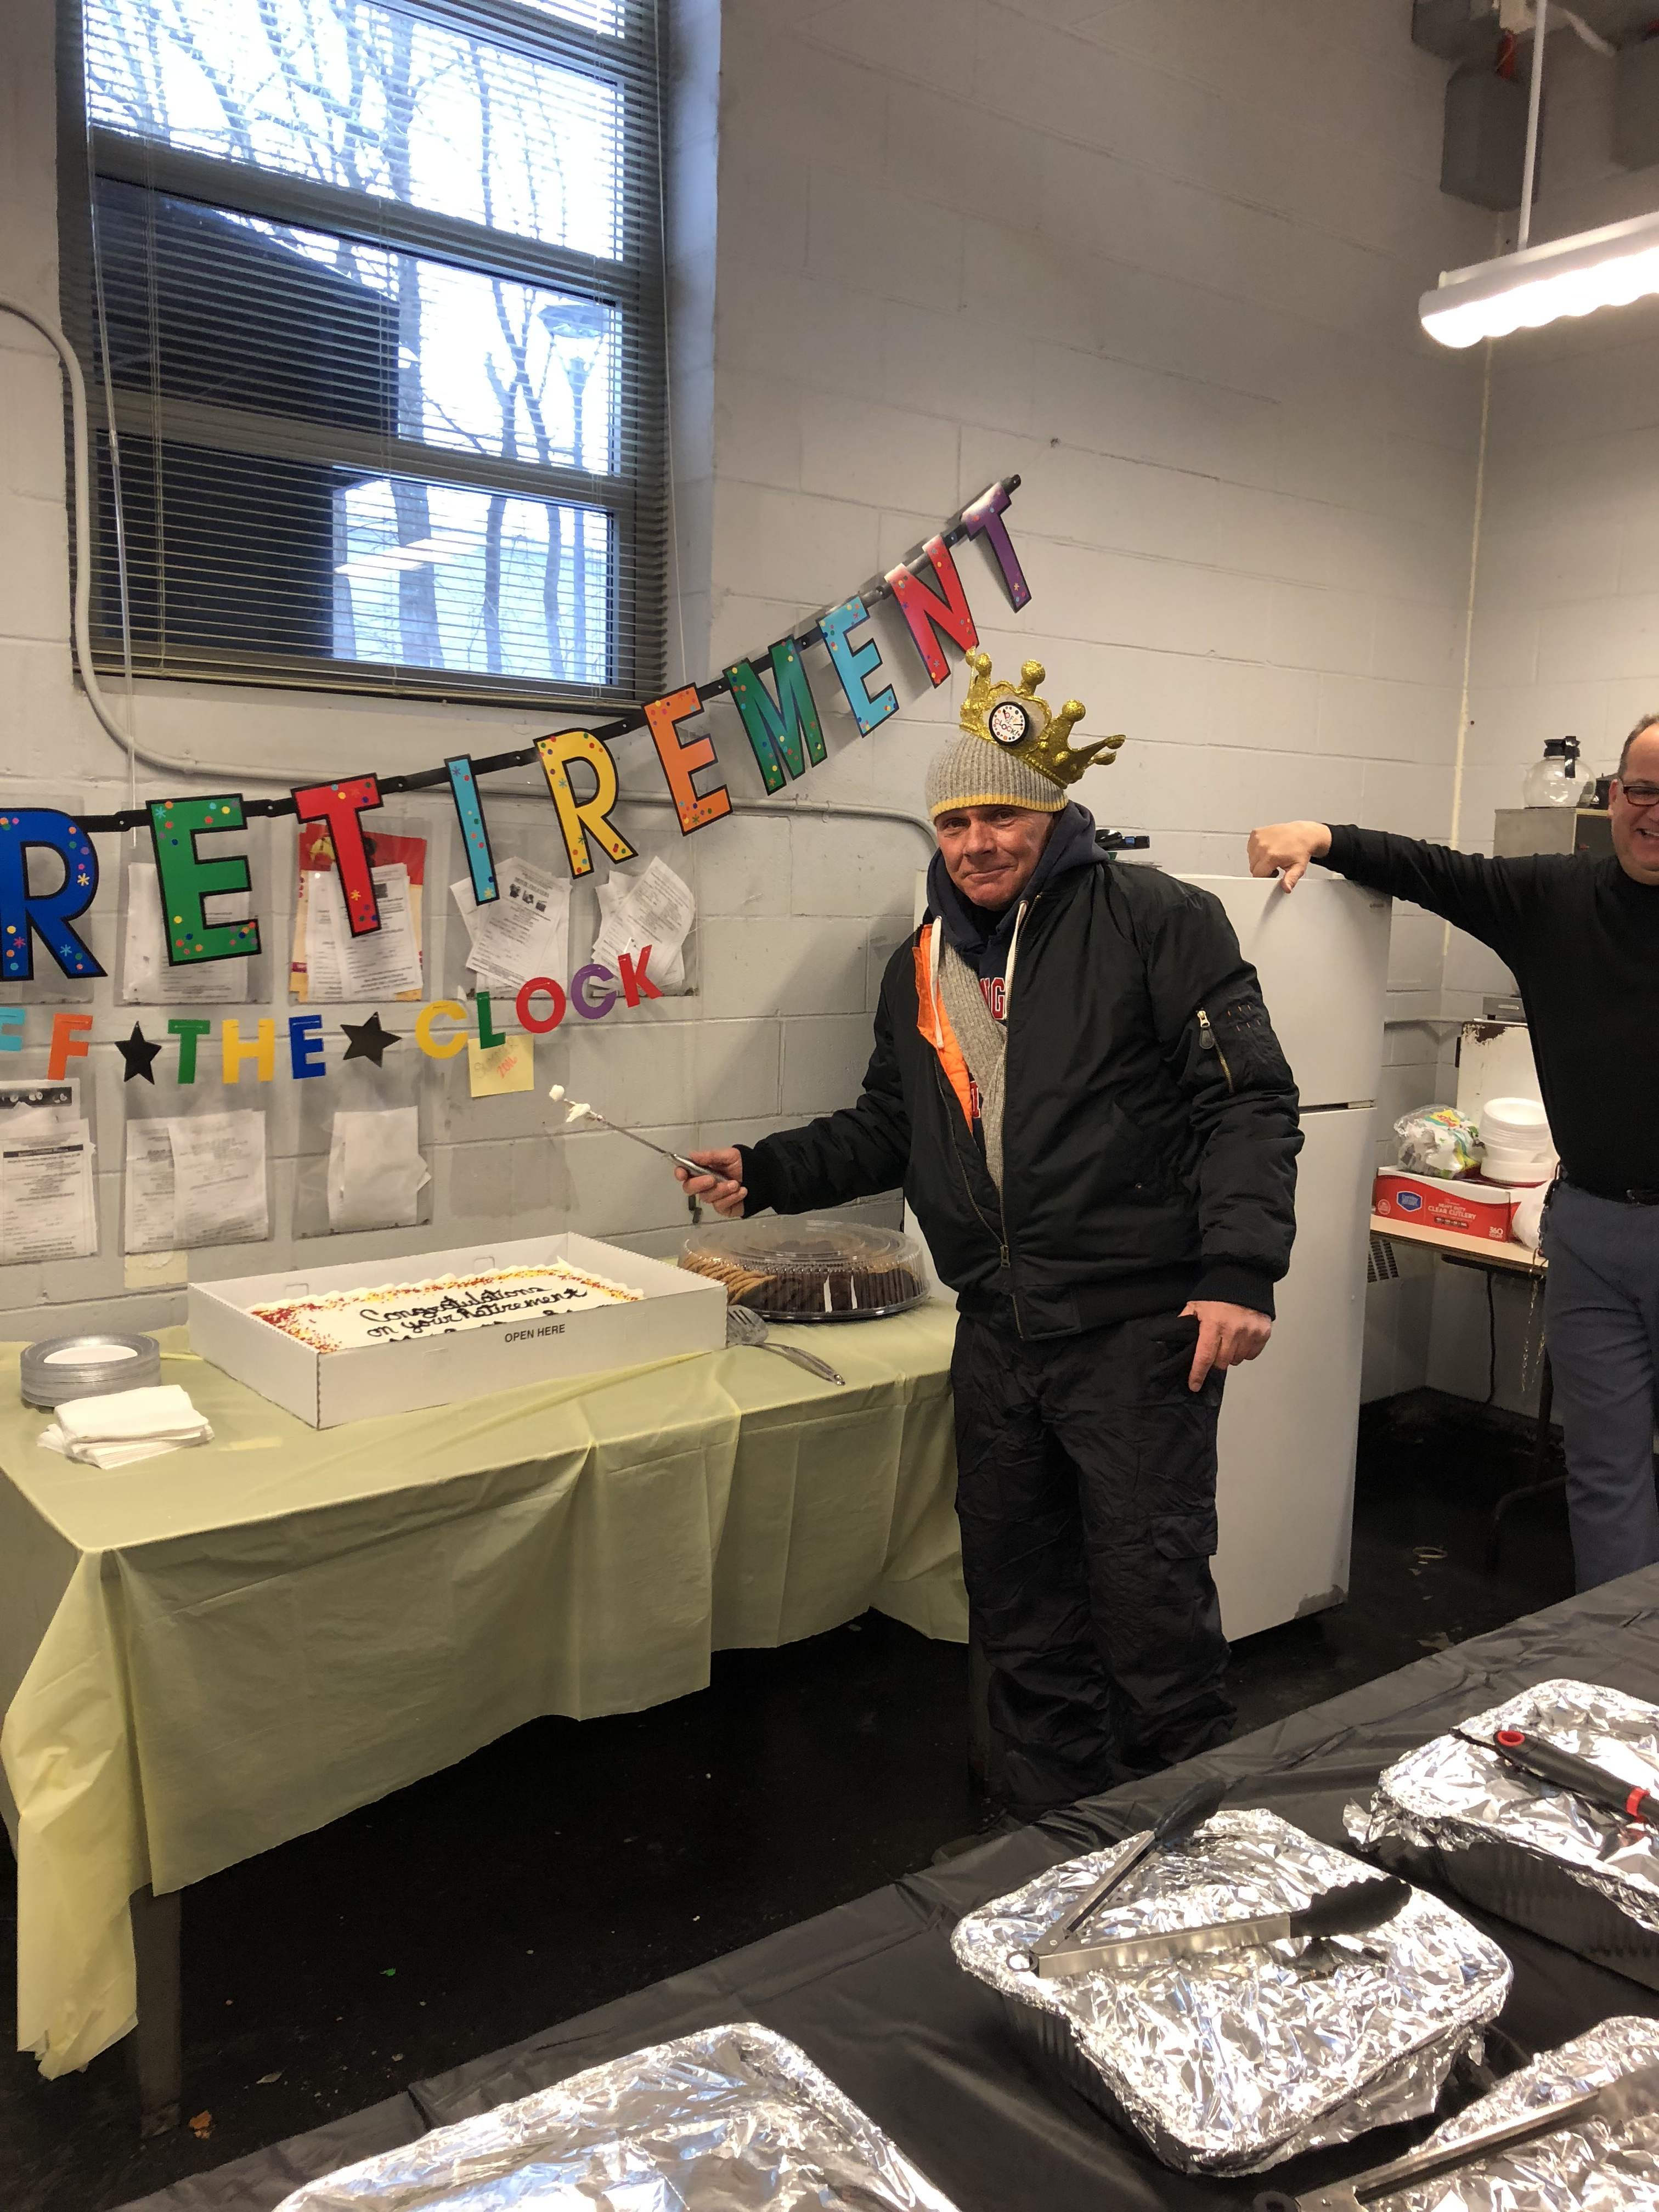 Malden Carrier's know how to throw a retirement party.